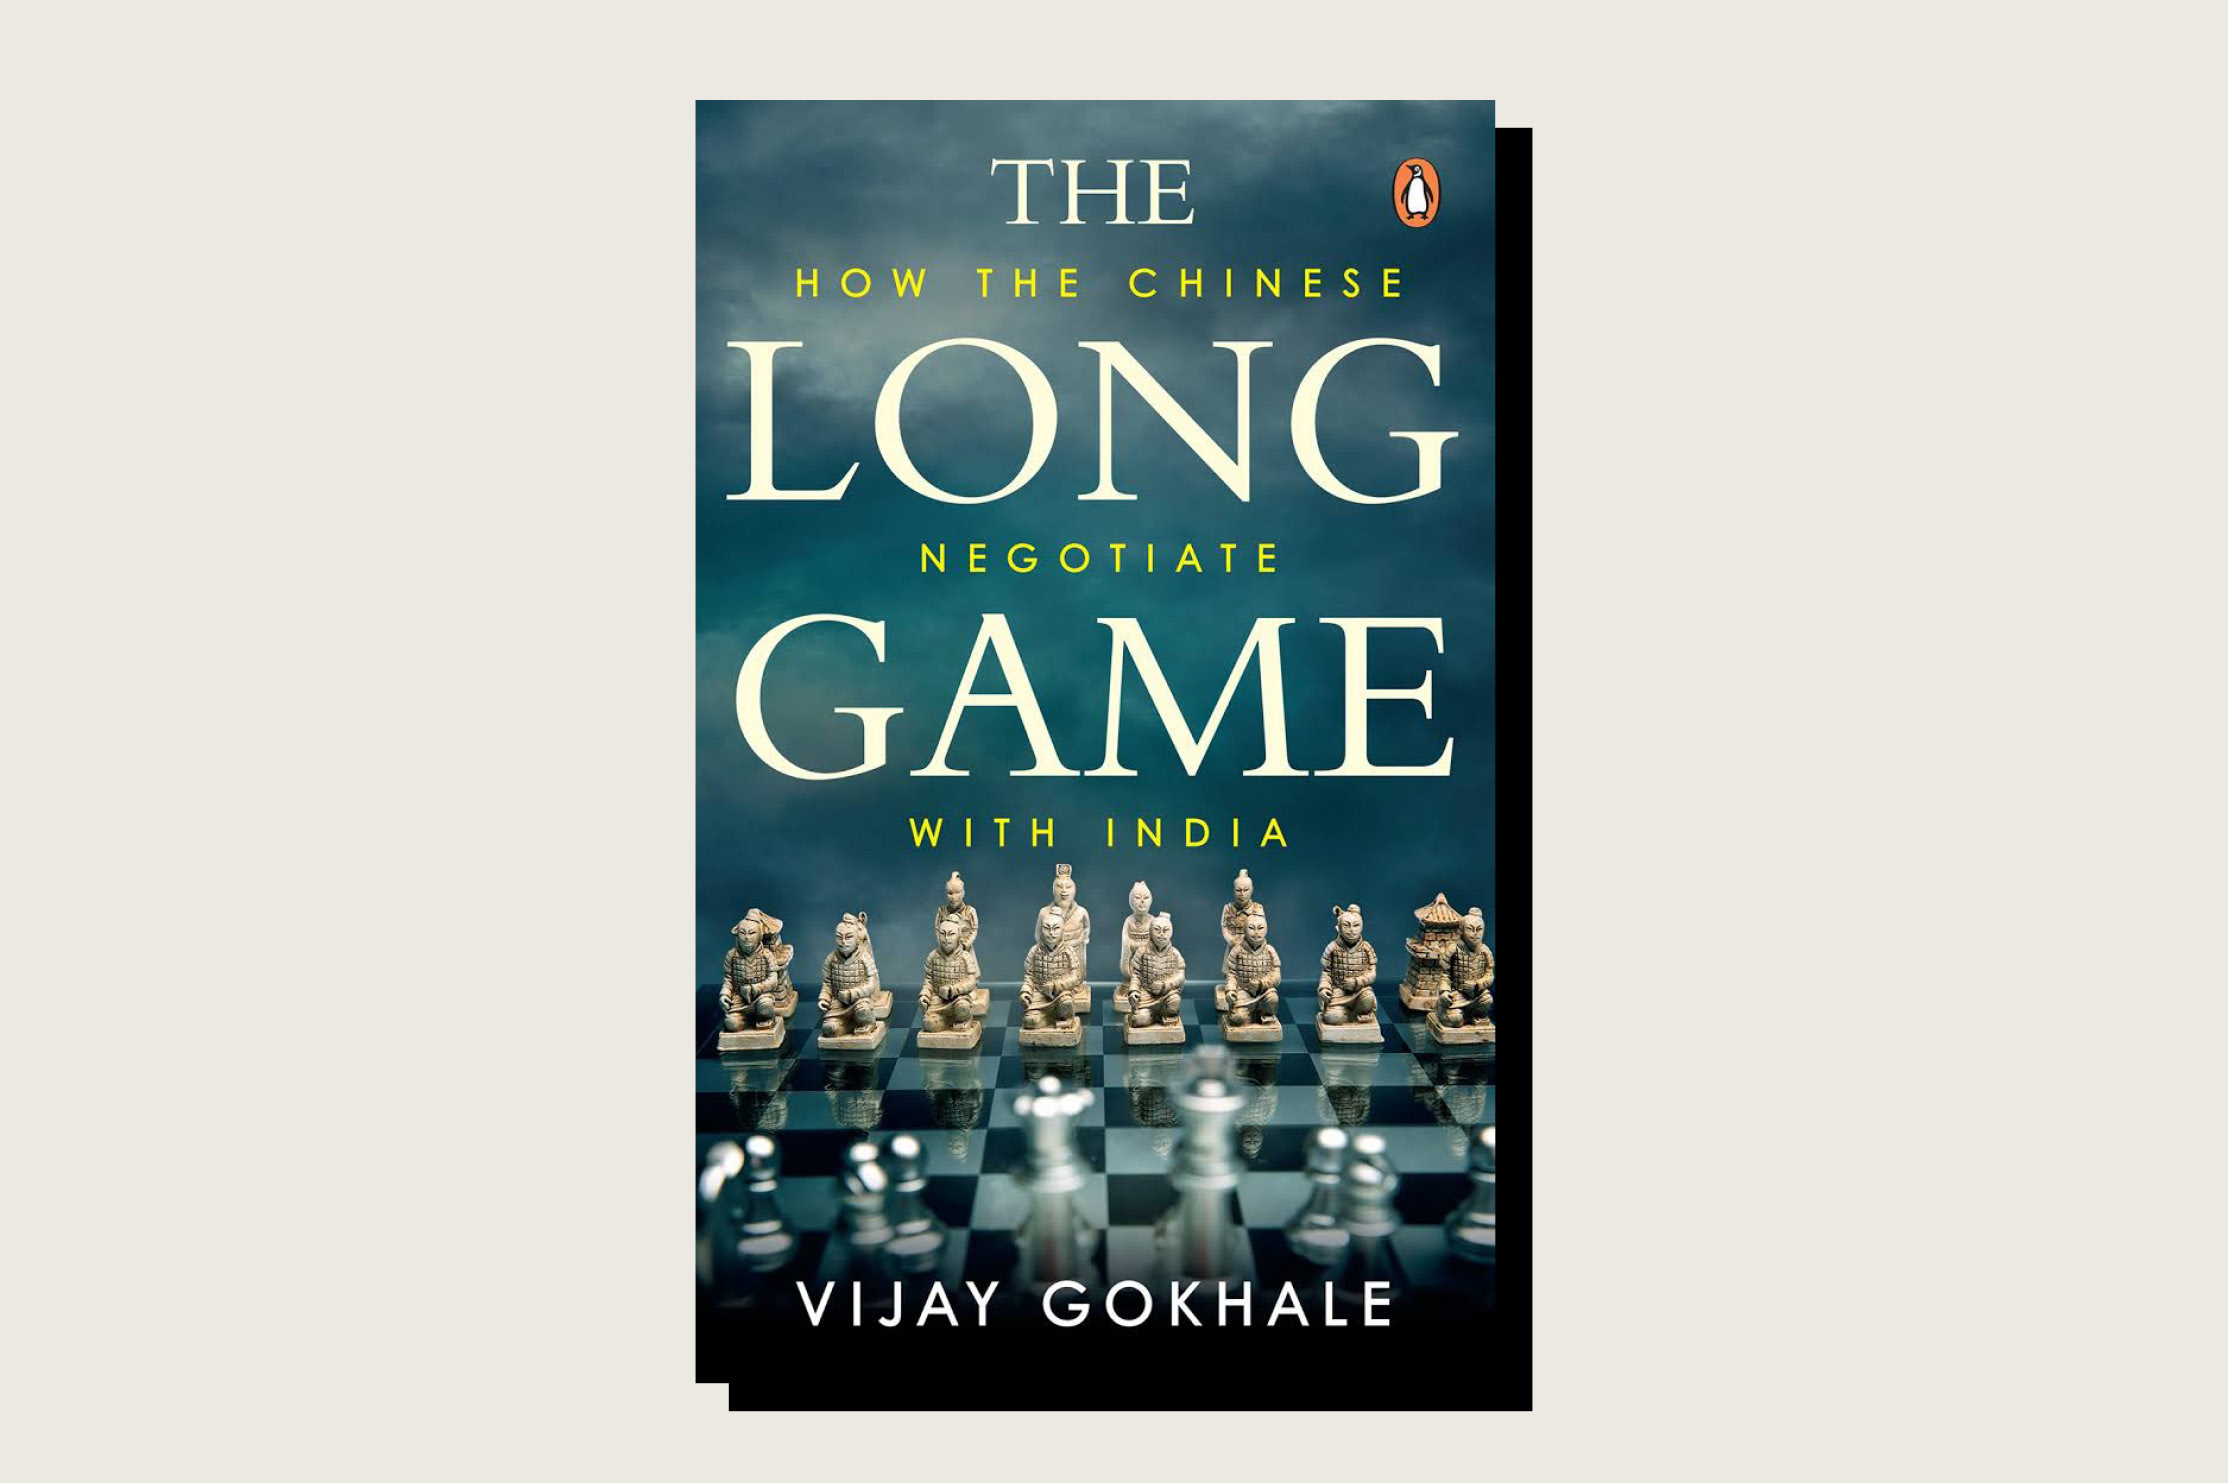 The Long Game: How the Chinese Negotiate With India, Vijay Gokhale, Vintage Books, 200 pp., 699 rupees, July 2021